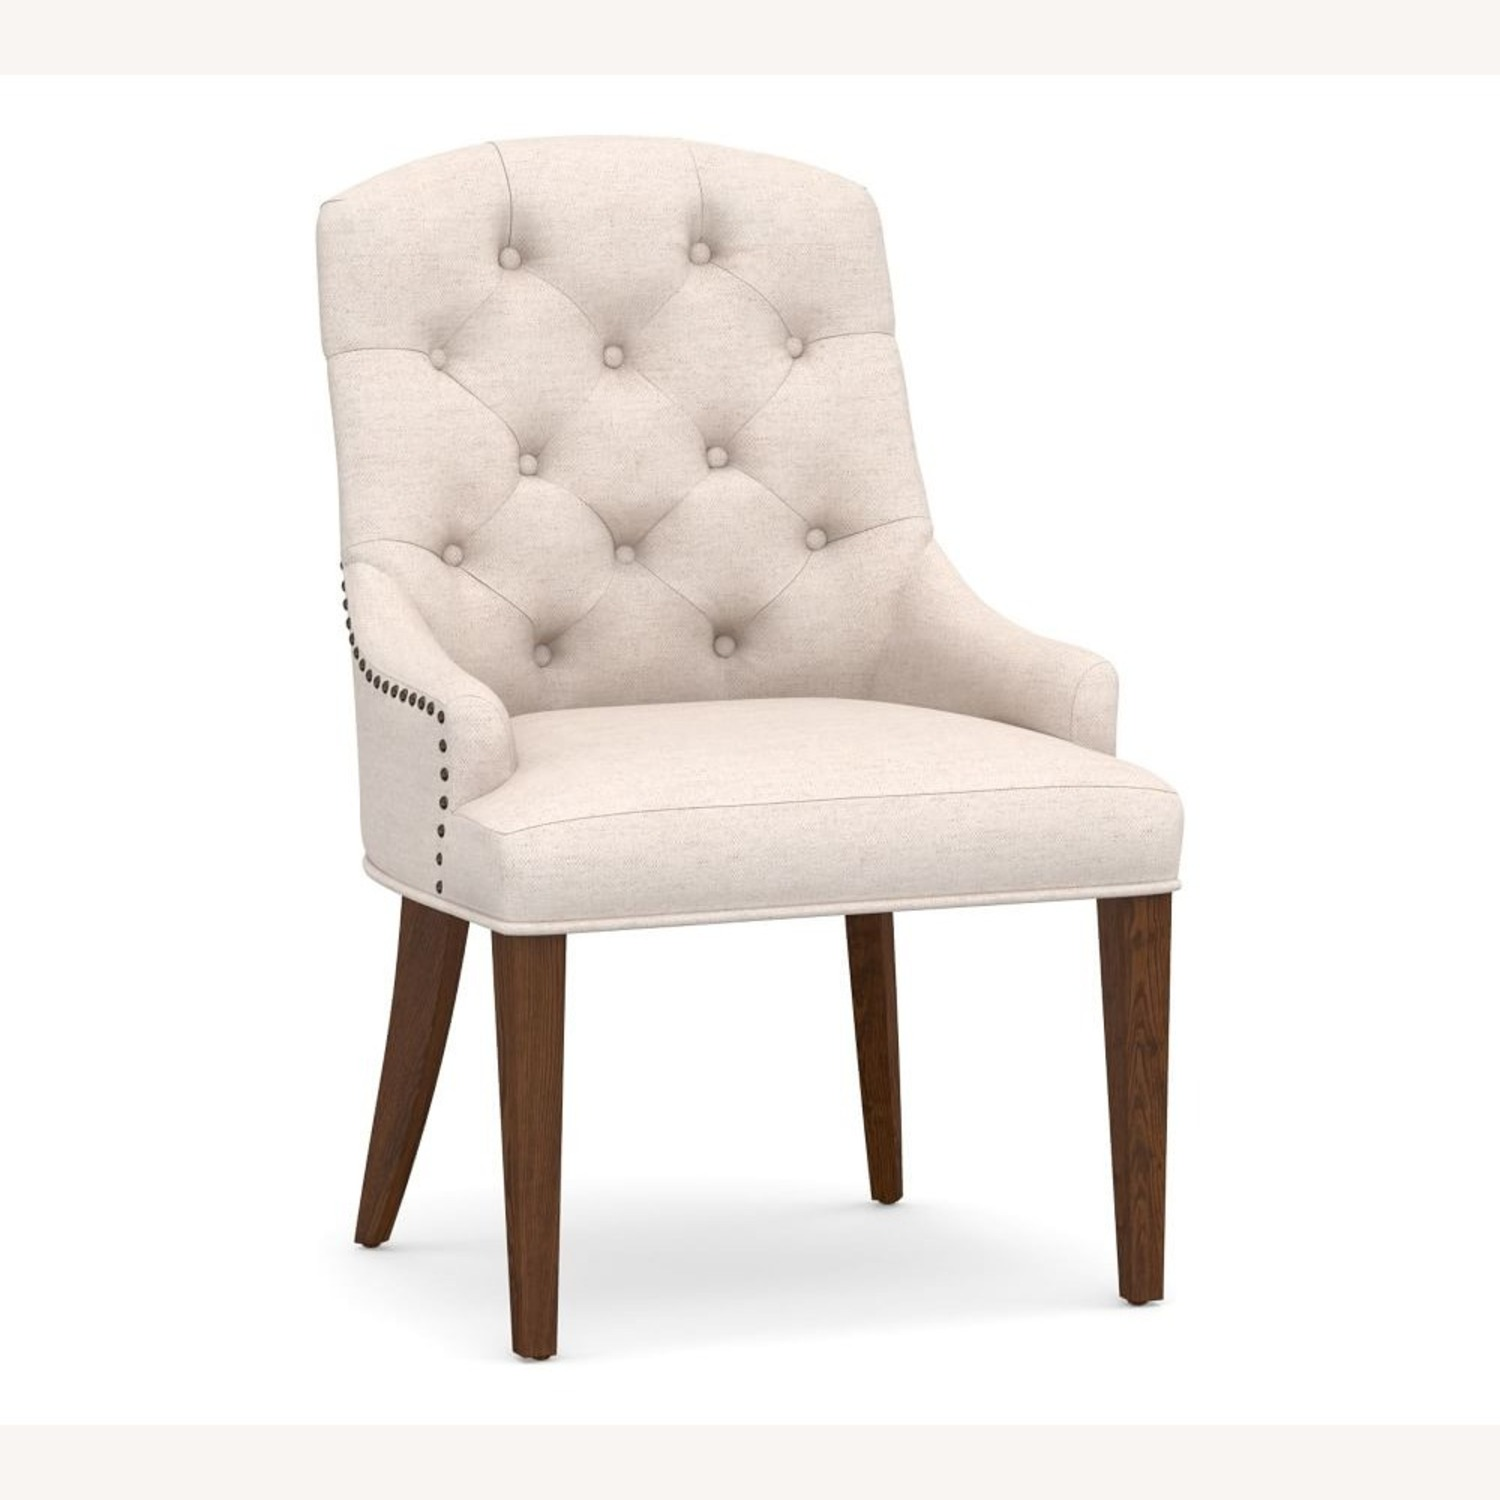 Pottery Barn Lorraine Upholstered Tufted Armchair - image-2